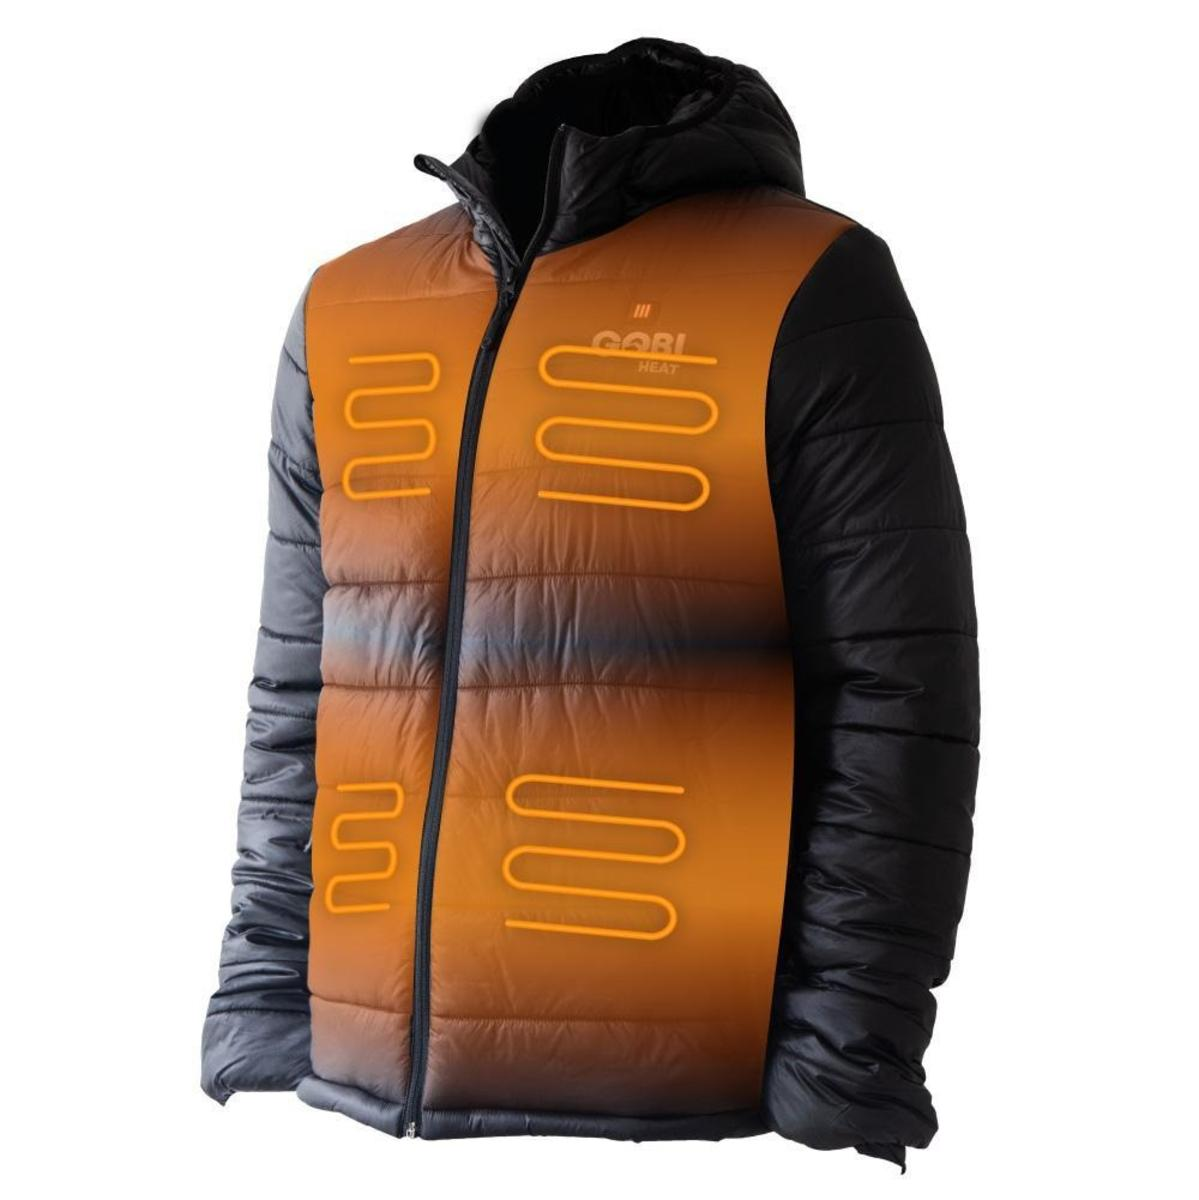 0d8c7bf54f0d5 Gobi Heat Men's Nomad 5 Zone Heated Jacket - The Warming Store